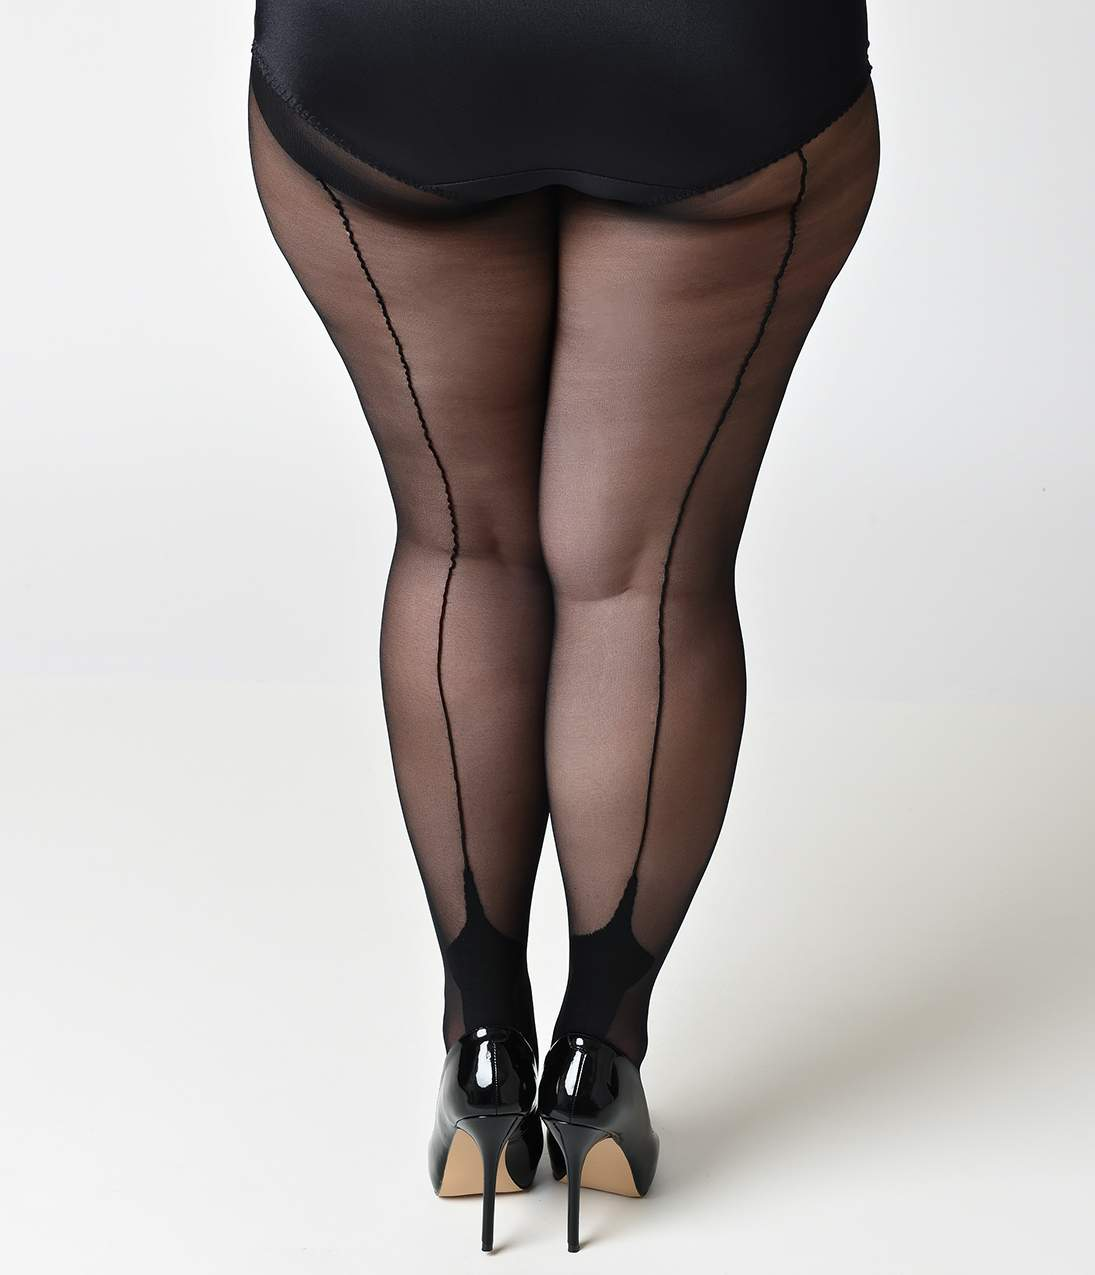 1950s Stockings and Nylons History & Shopping Guide Plus Size Black Cuban Heel Stockings $12.00 AT vintagedancer.com